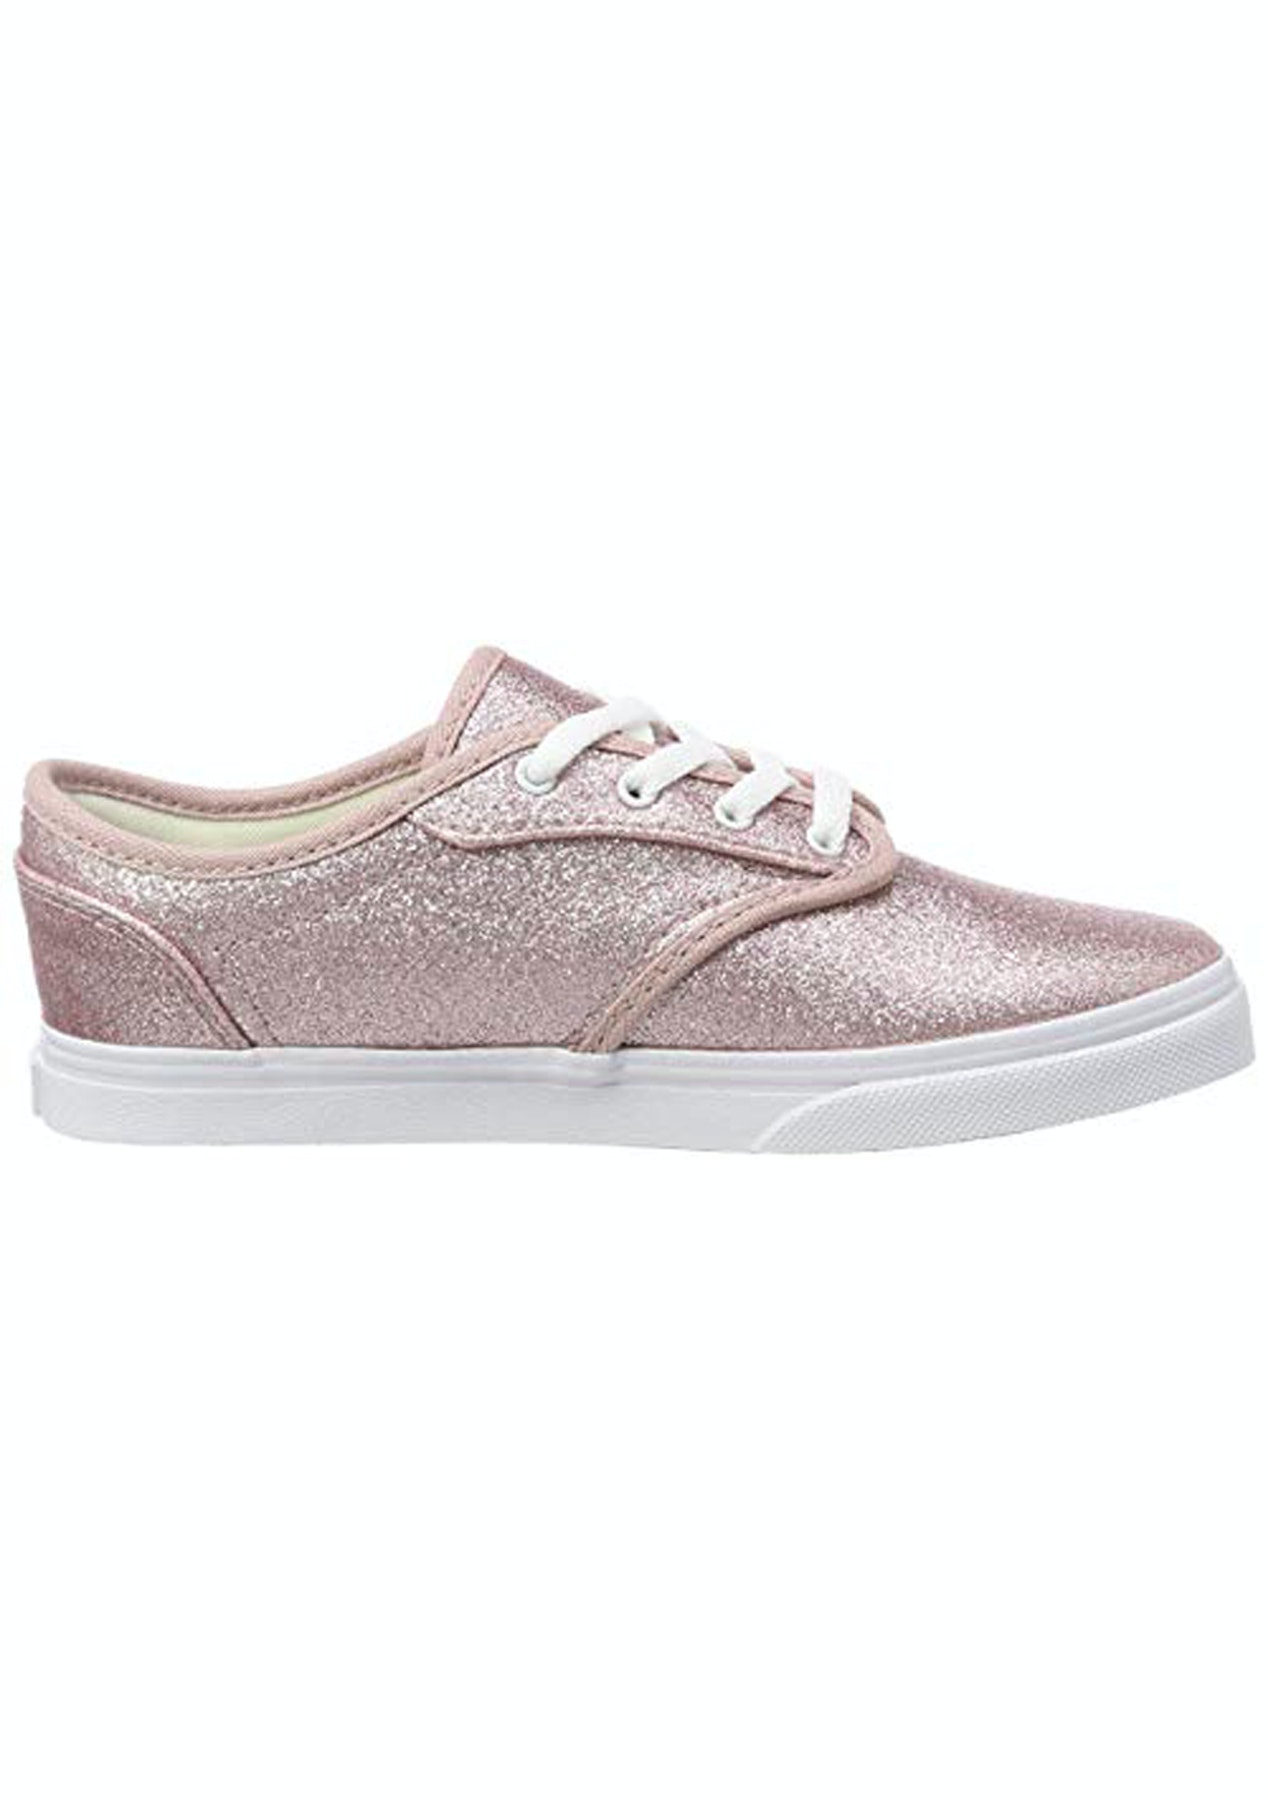 Vans - Kids Atwood Low - Glitter - Pink - New Intro by Federation   More -  Onceit ecb55f5580